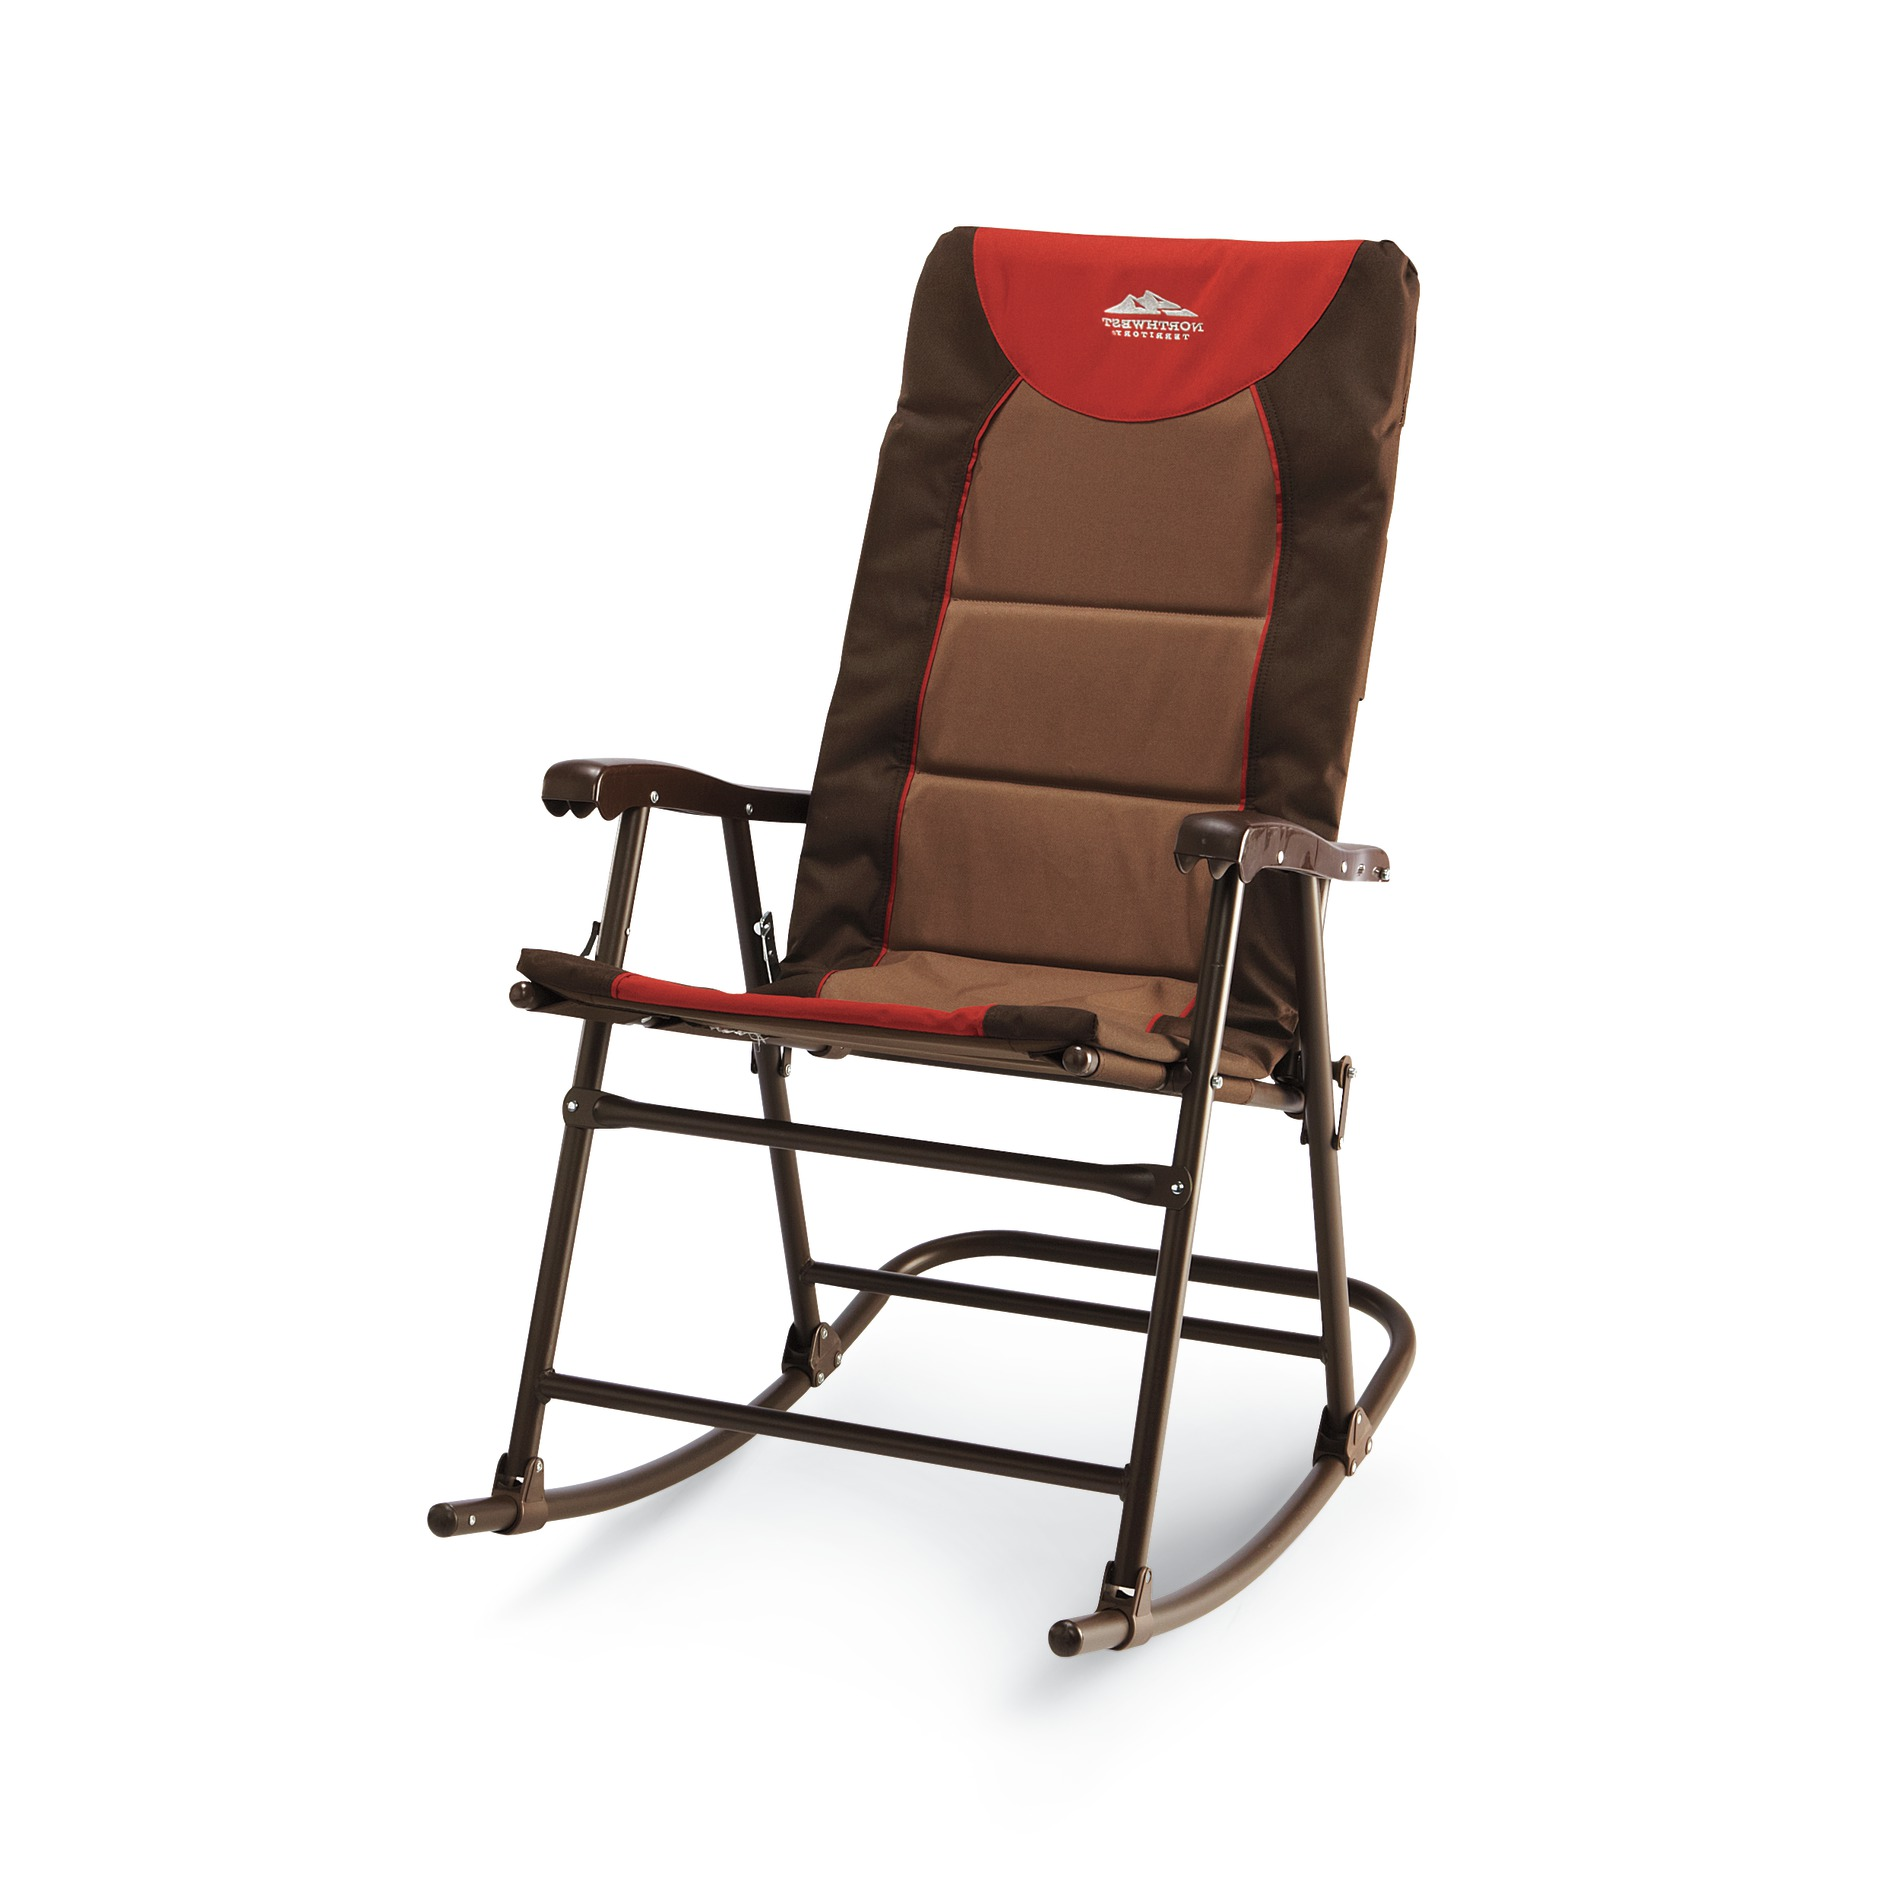 Comfortable Rocking Chair Rocking Chair Folding Outdoor Camping Patio Comfortable